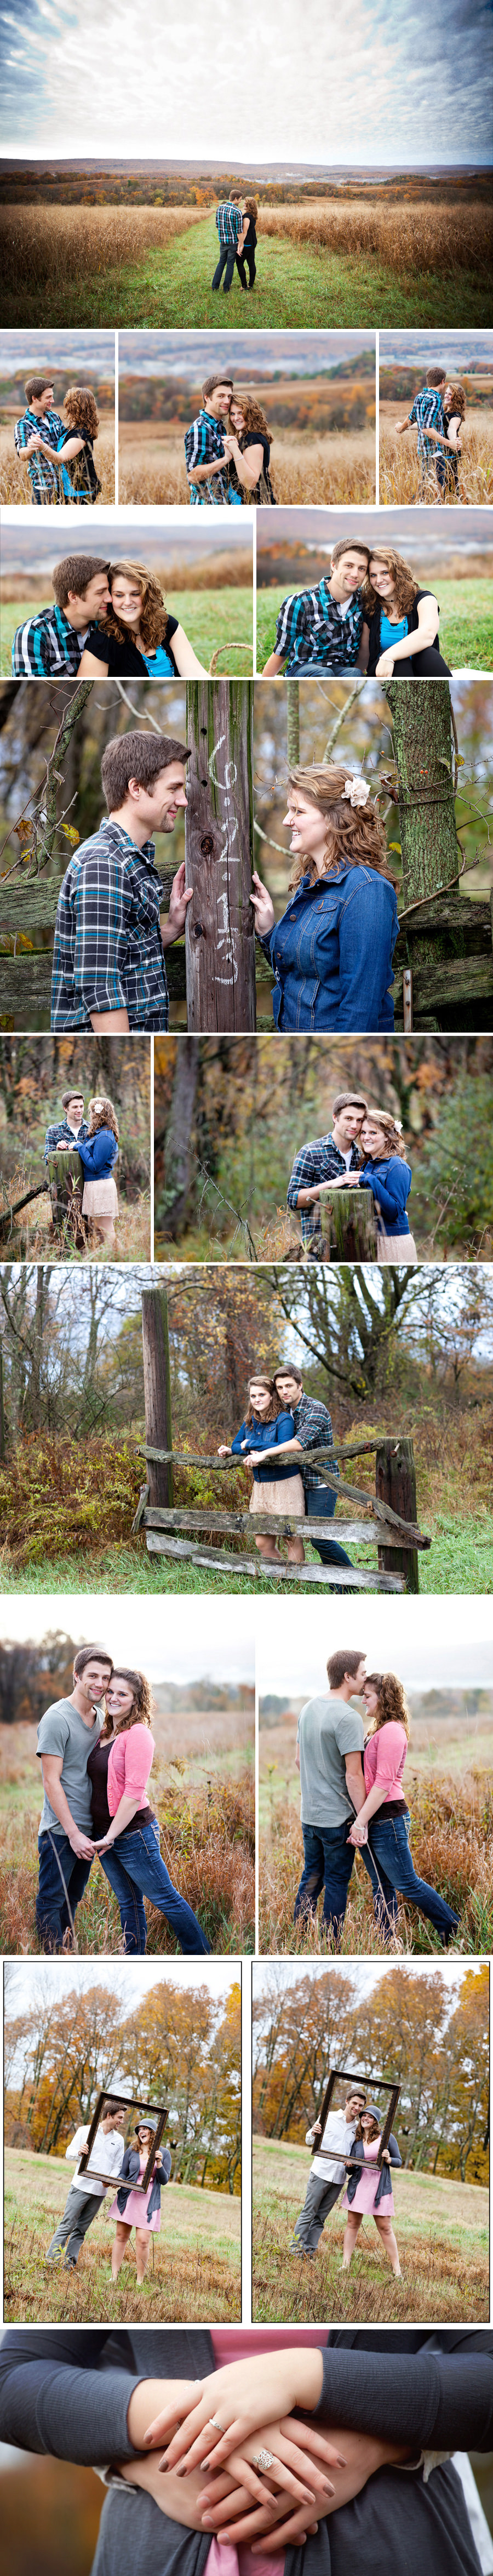 Engagement Photography Session with magnificent views